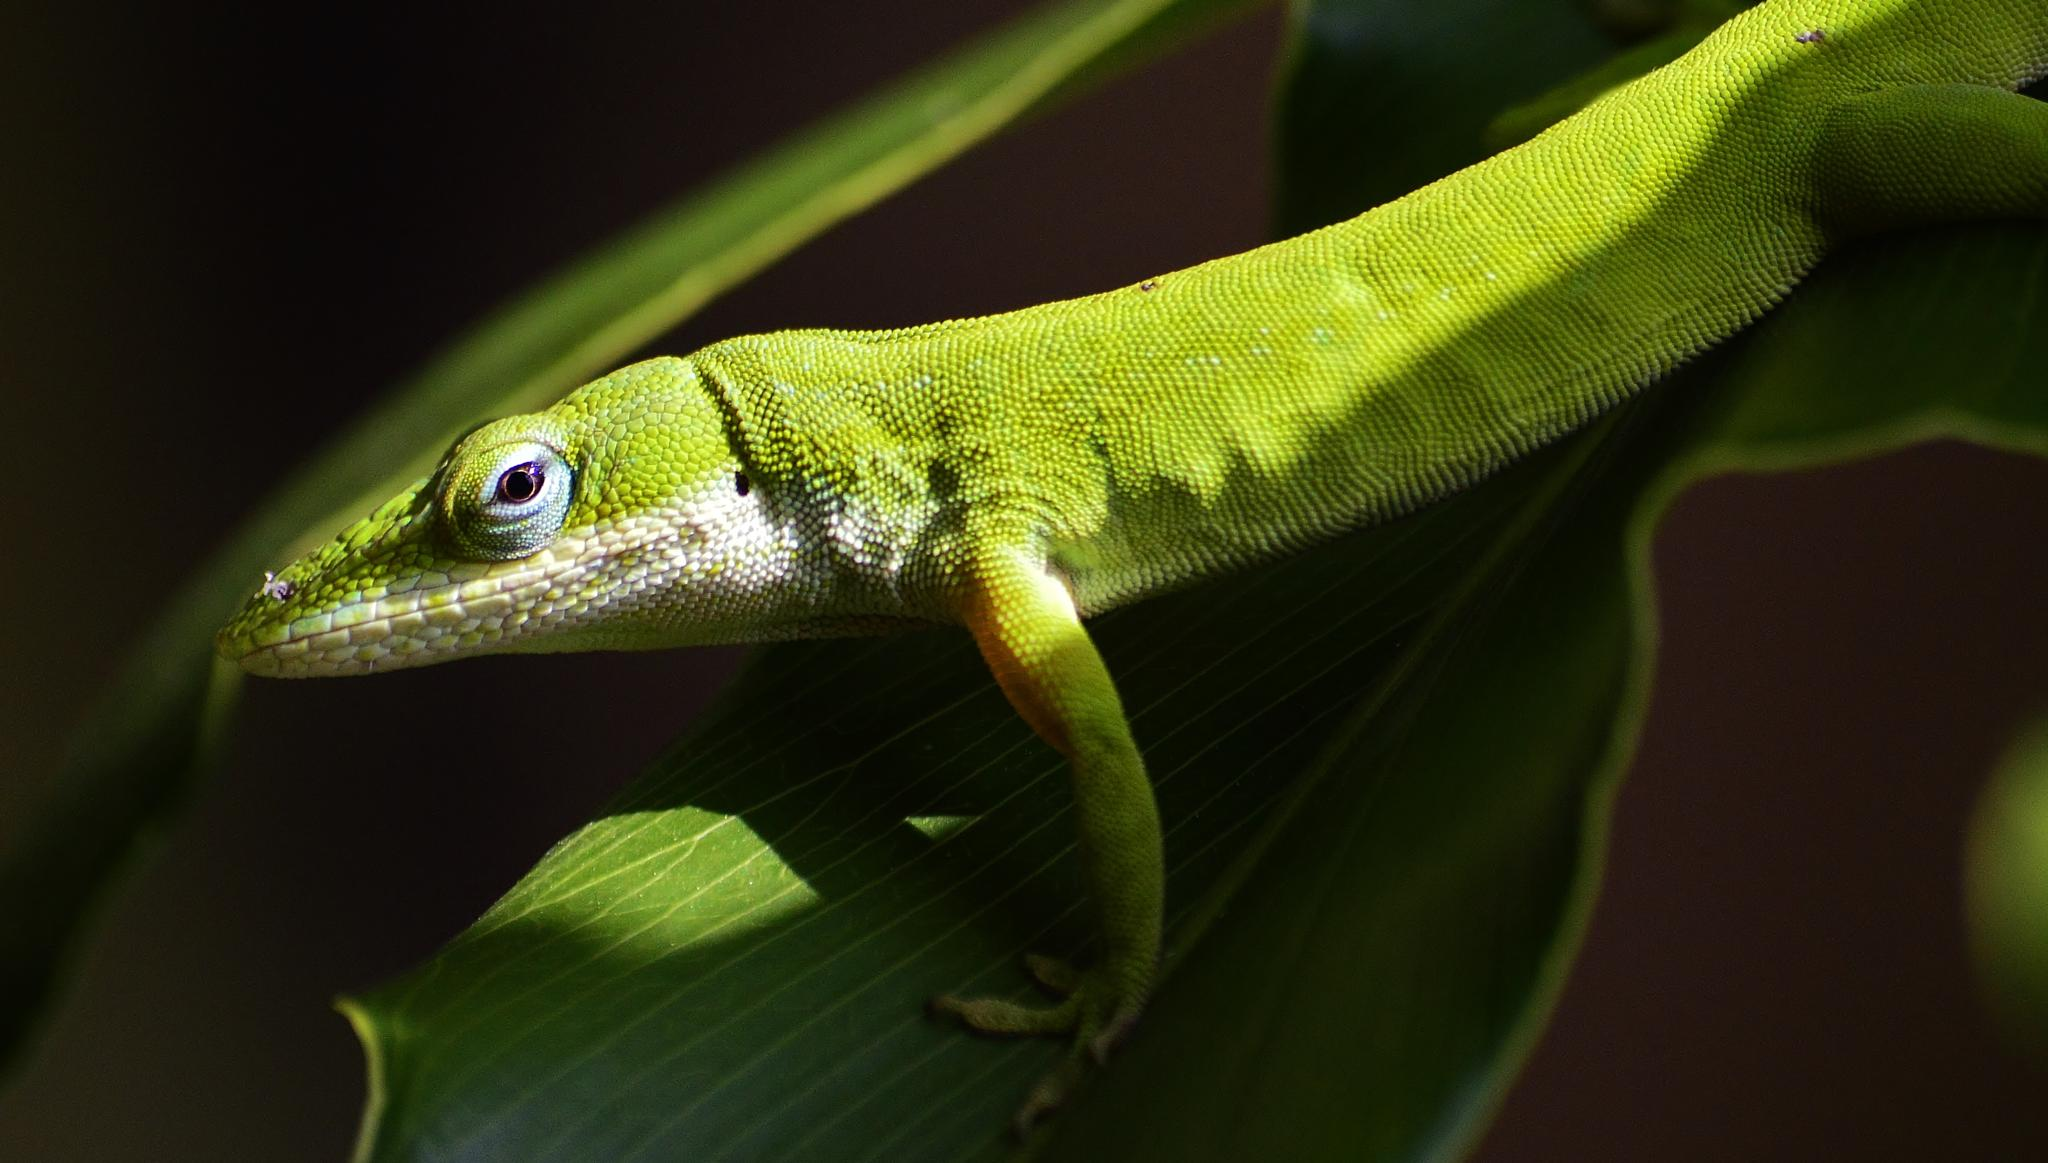 Green Anole by jamie.dorton